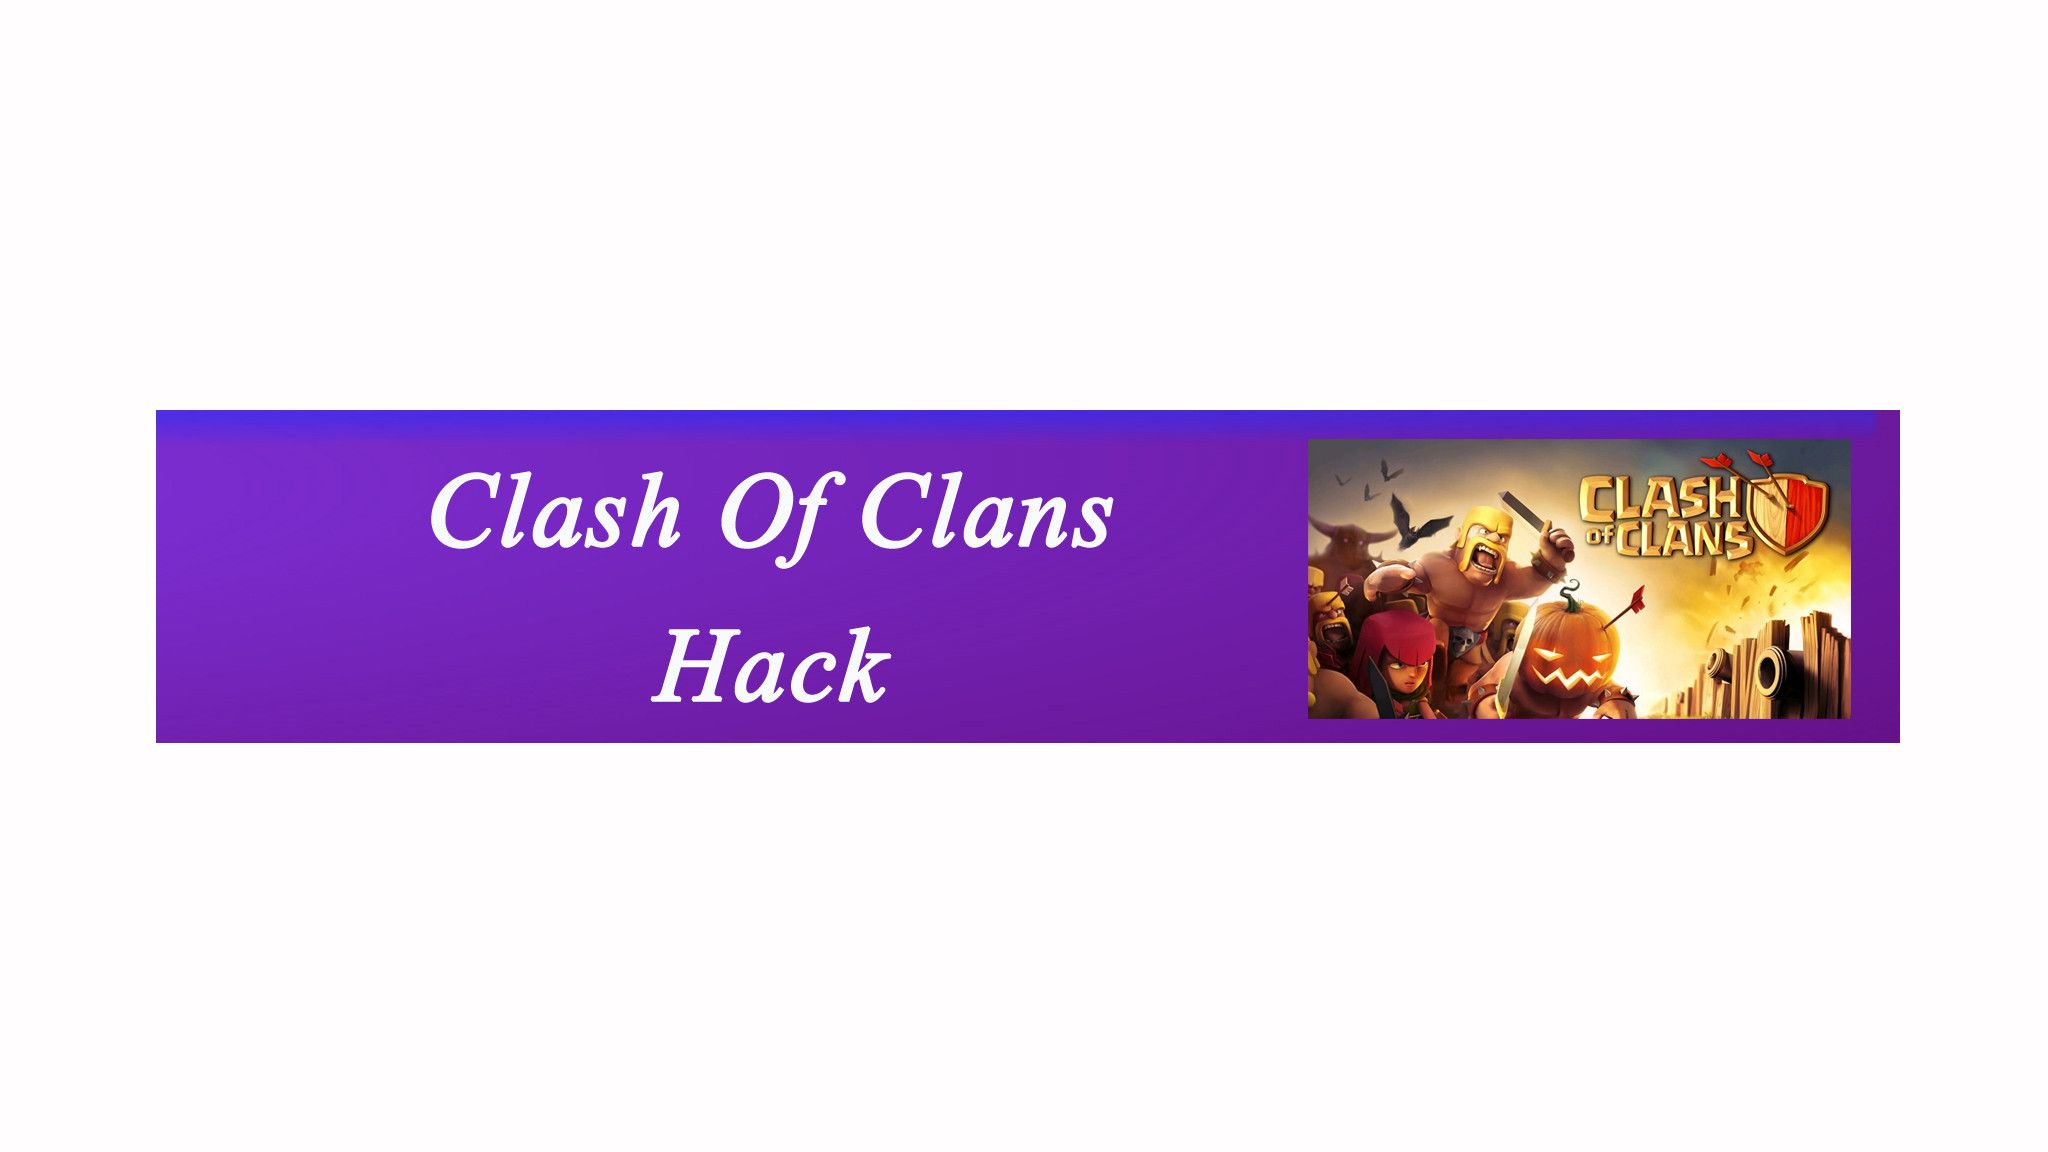 Get unlimited elexir, gold, gems and unlock all levels in Clash of Clans using our hack tool. We proudly present Clash of Clans Cheats for you to discover the new levels in the game. If you are a fan of clash of clans, then you can use this tool to complete the game faster by unlocking or setting all the resources to unlimited through Cheats. Browse this site http://clashofclansapp.net for more information on Clash Of Clans Cheats.